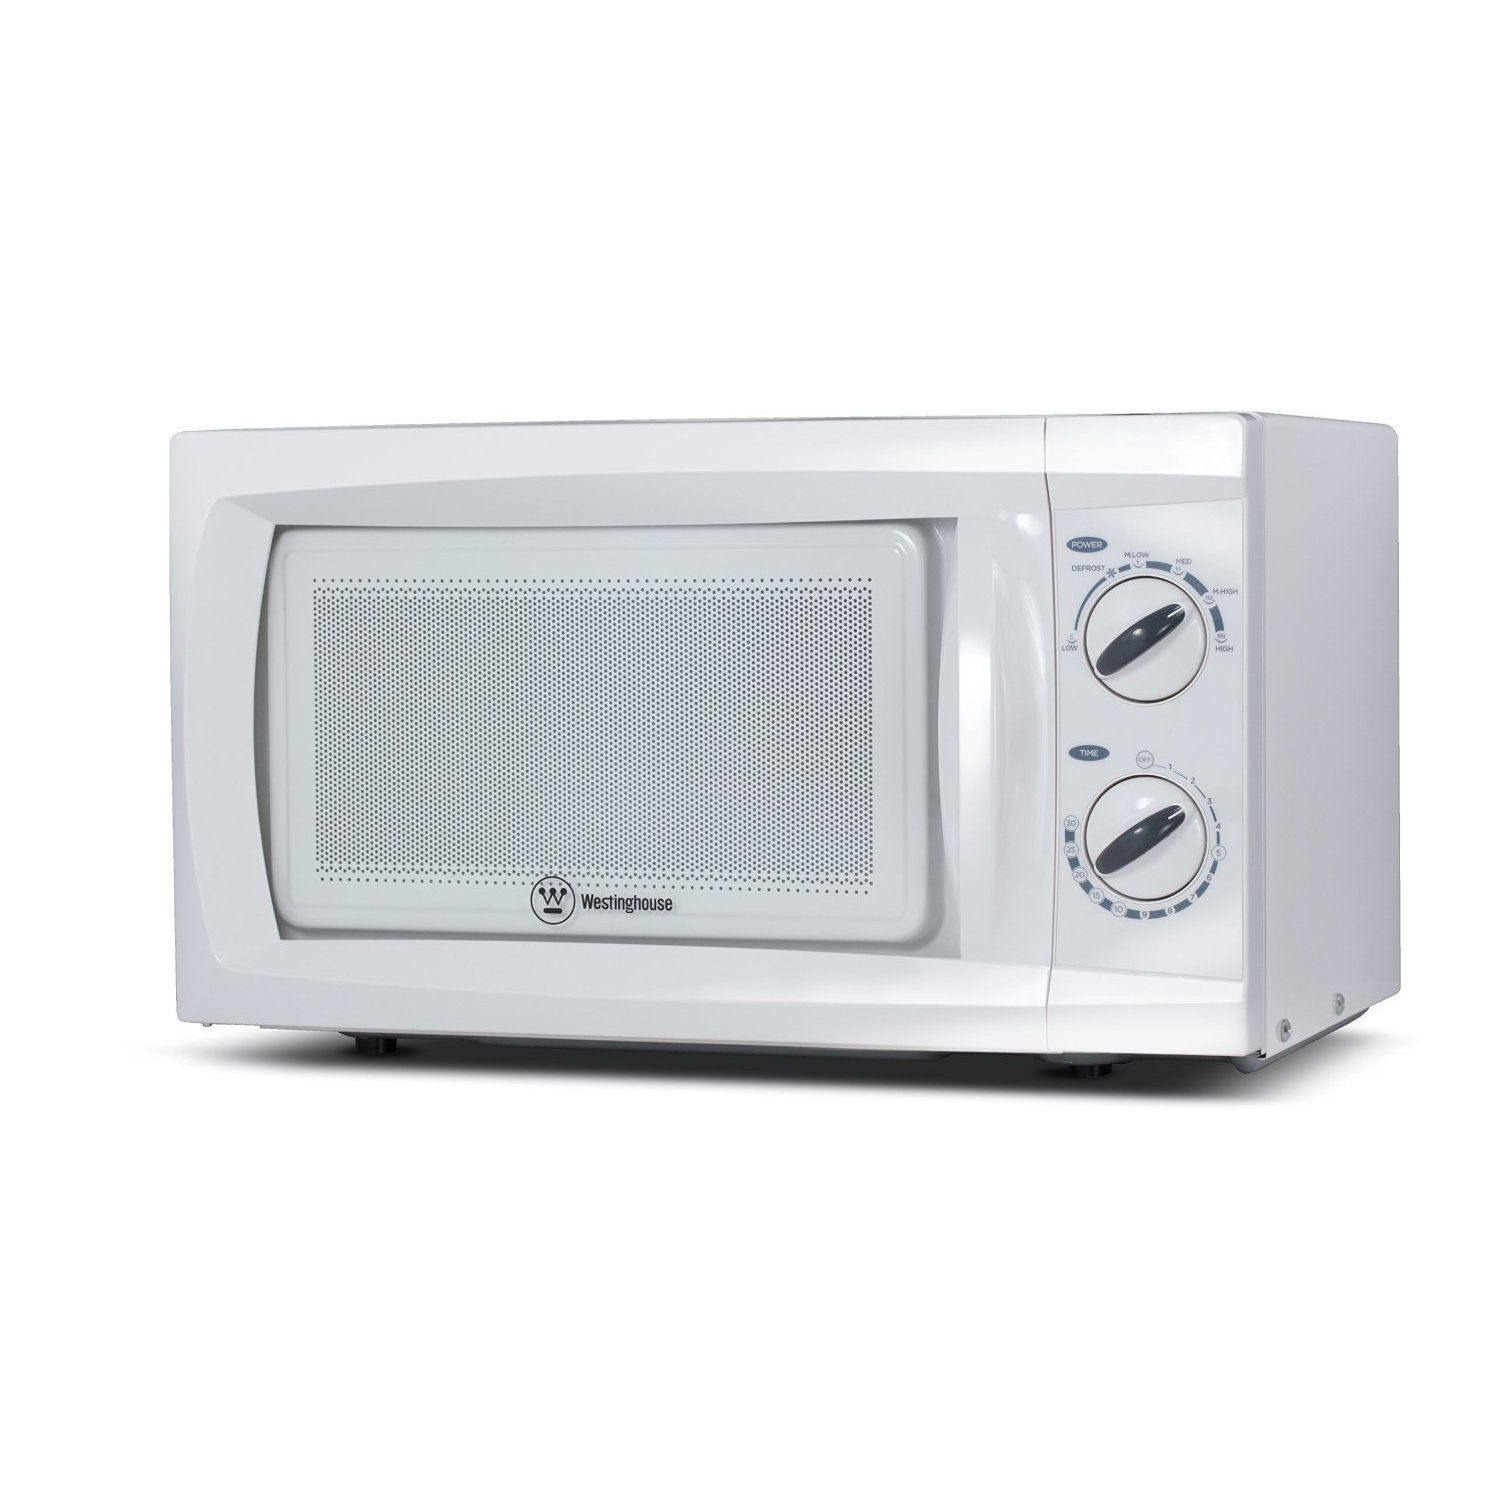 Westinghouse Kitchen Appliances Westinghouse Kitchen Foods Wcm660w White 06 Cubic Foot Microwave